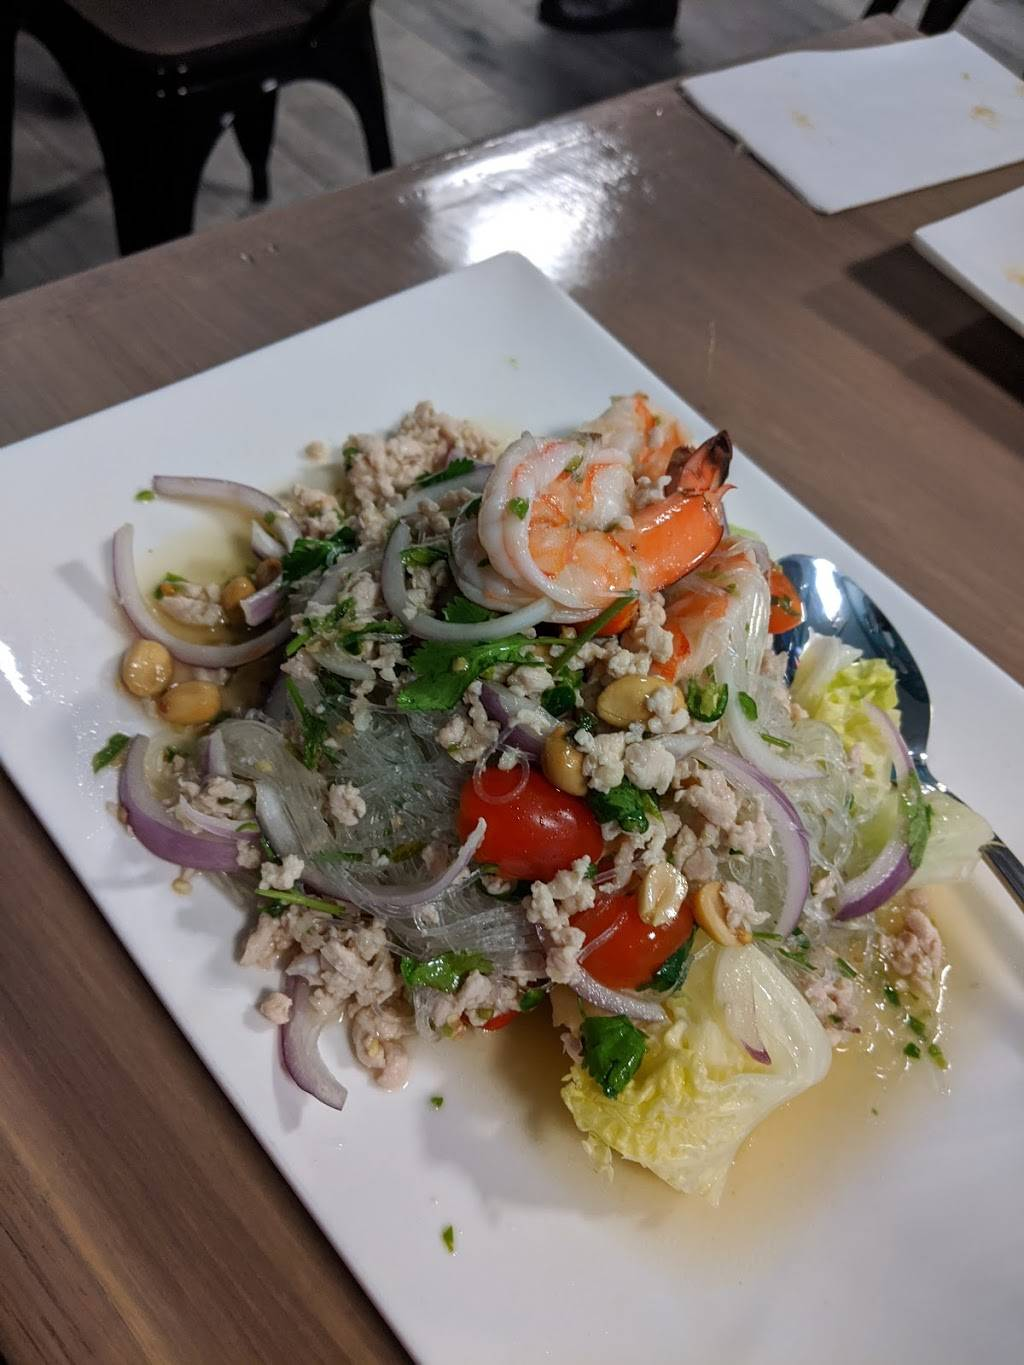 Thai Dishes | restaurant | 1924 Pleasantville Rd, Briarcliff Manor, NY 10510, USA | 9143734313 OR +1 914-373-4313